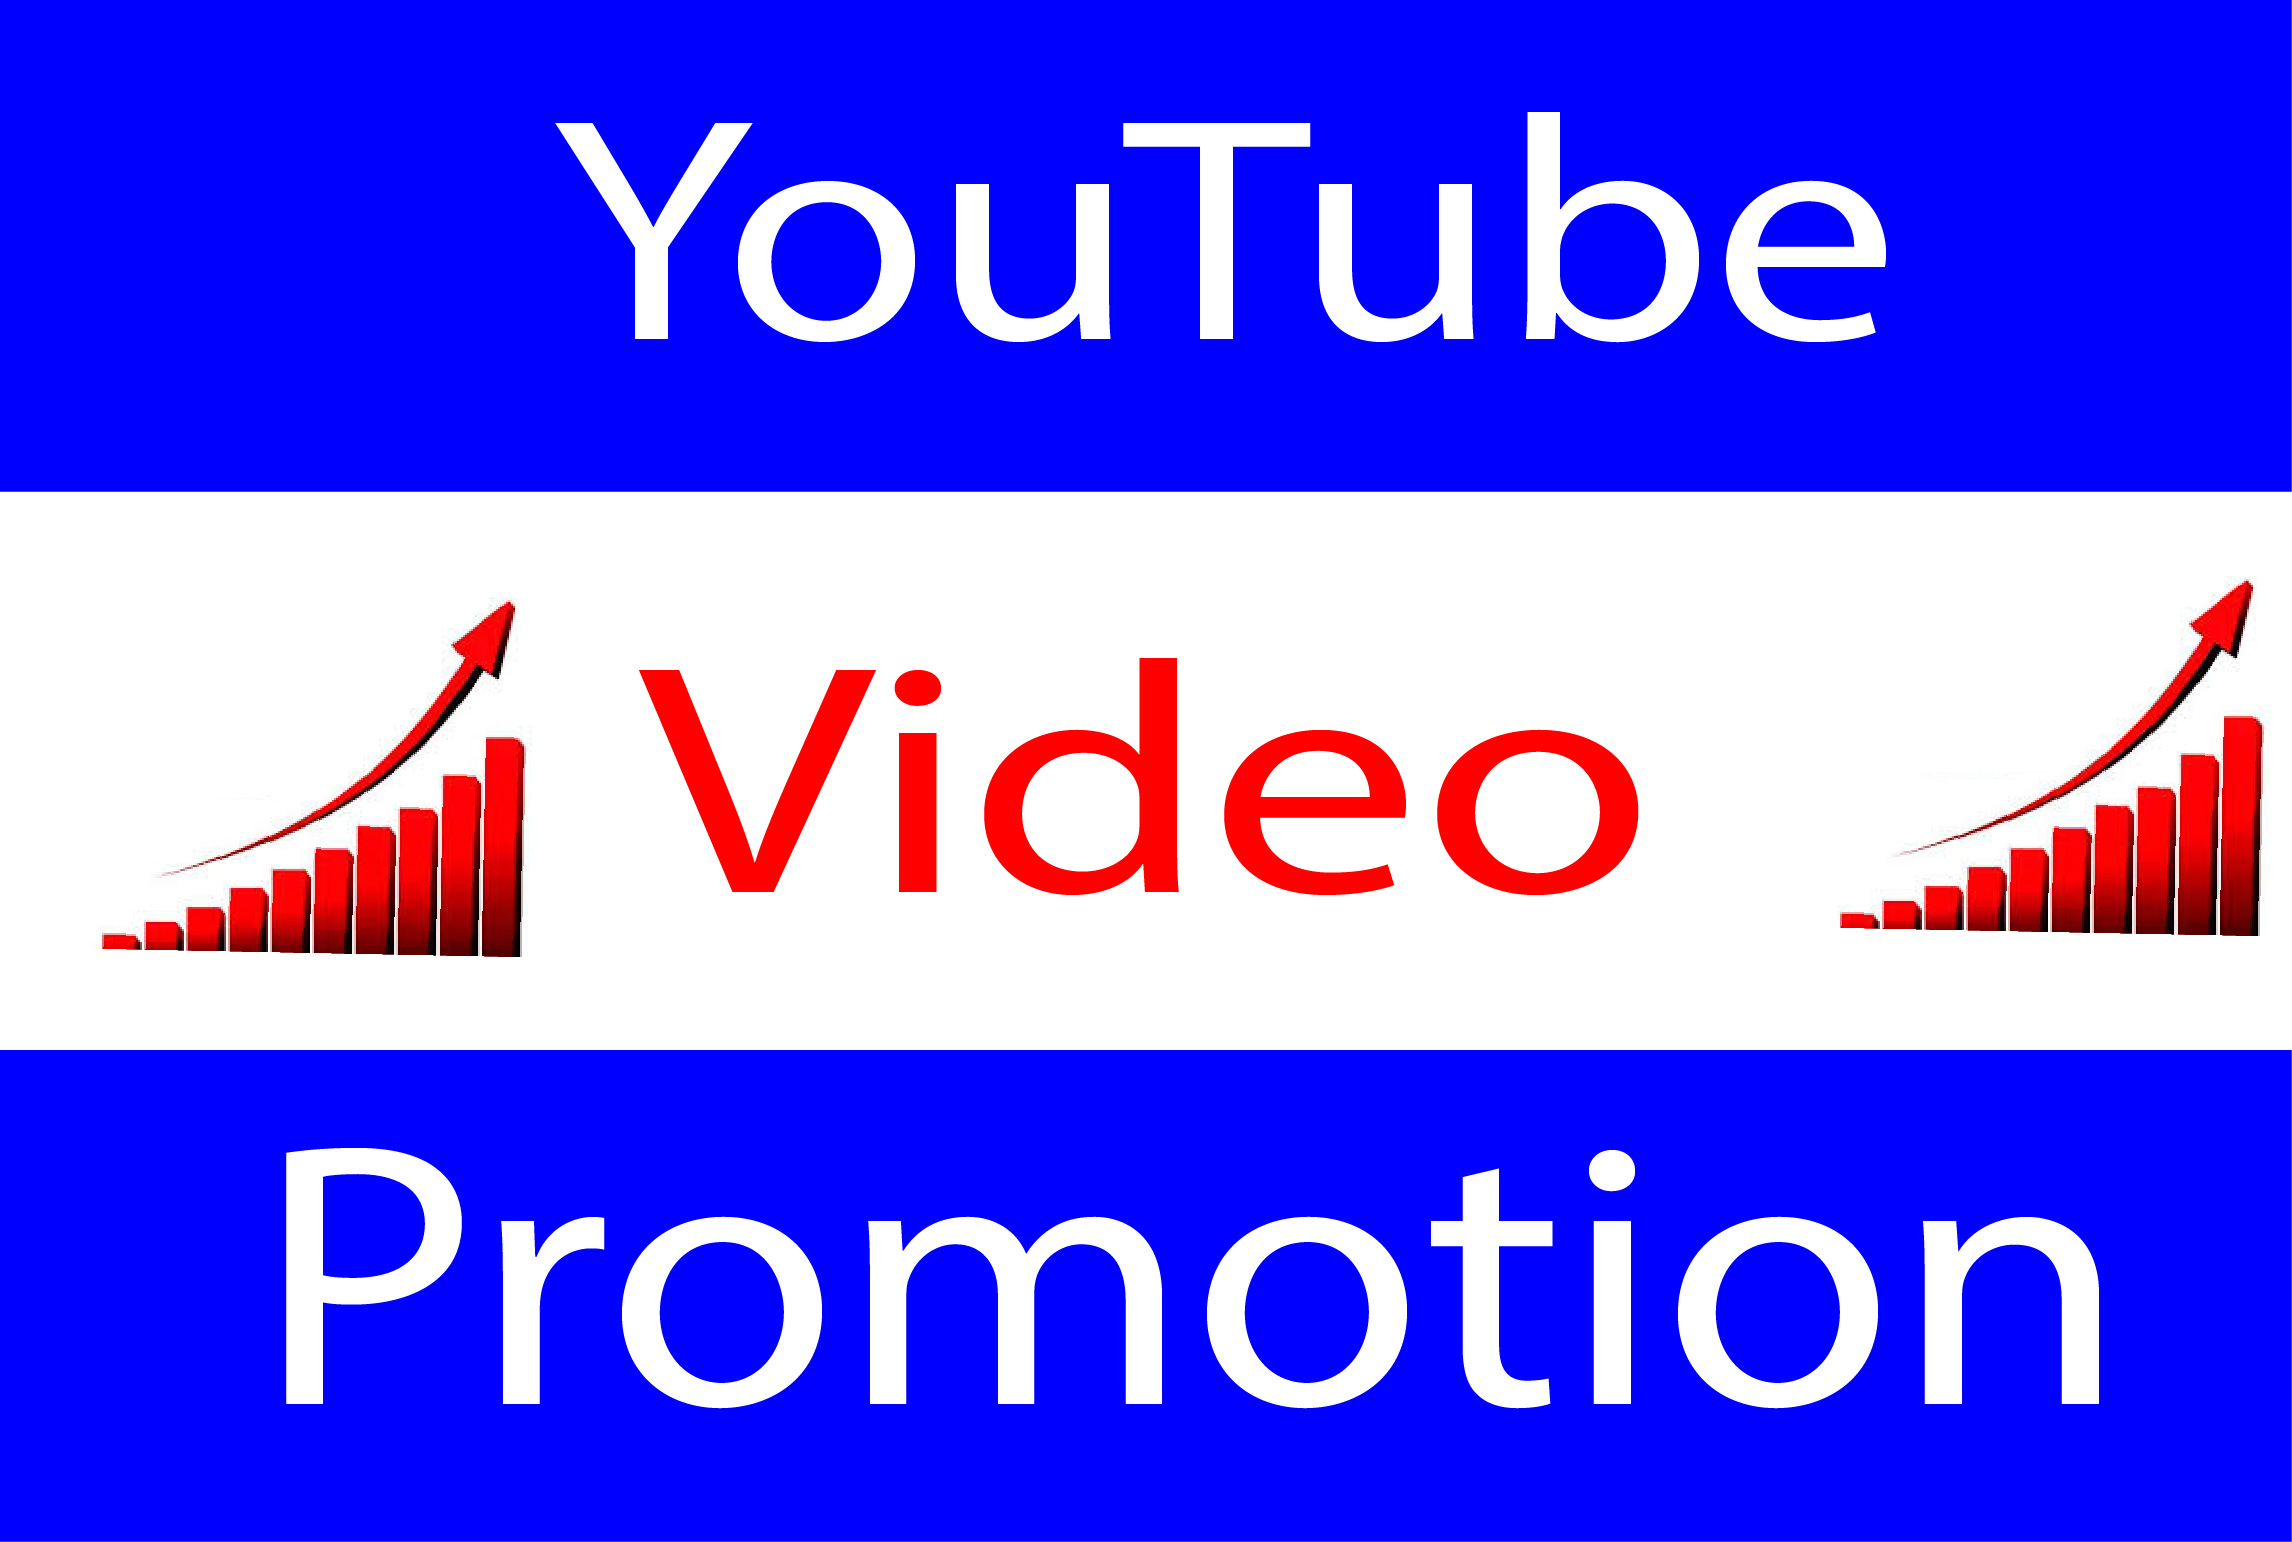 Increase Video Promotion Thumps Up Complete in 24 Hours